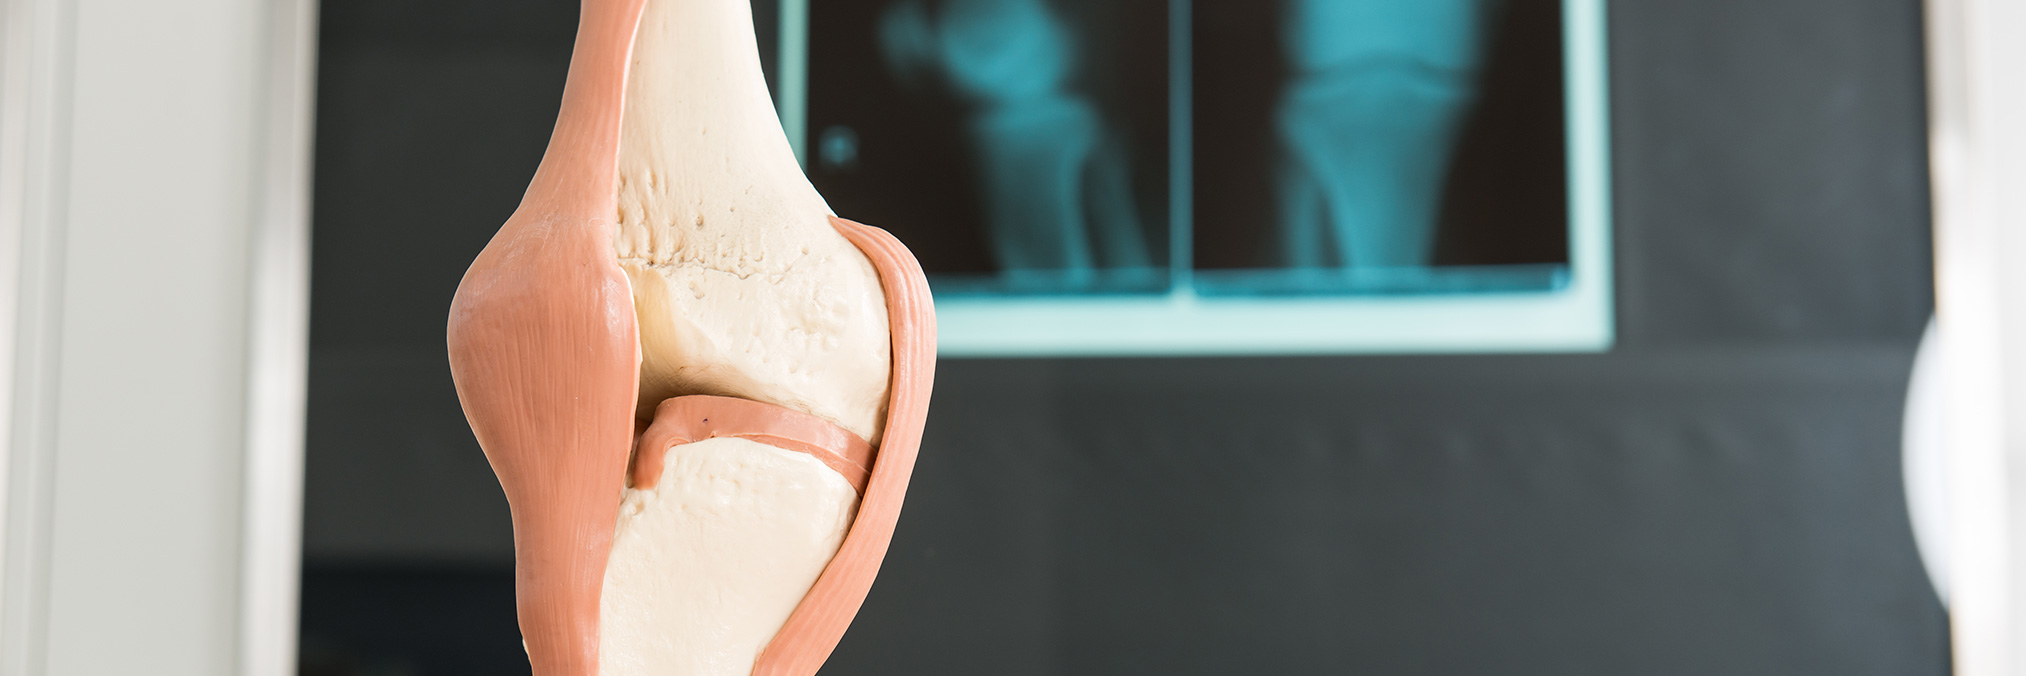 How To Choose an Arthroscopic Knee Surgeon